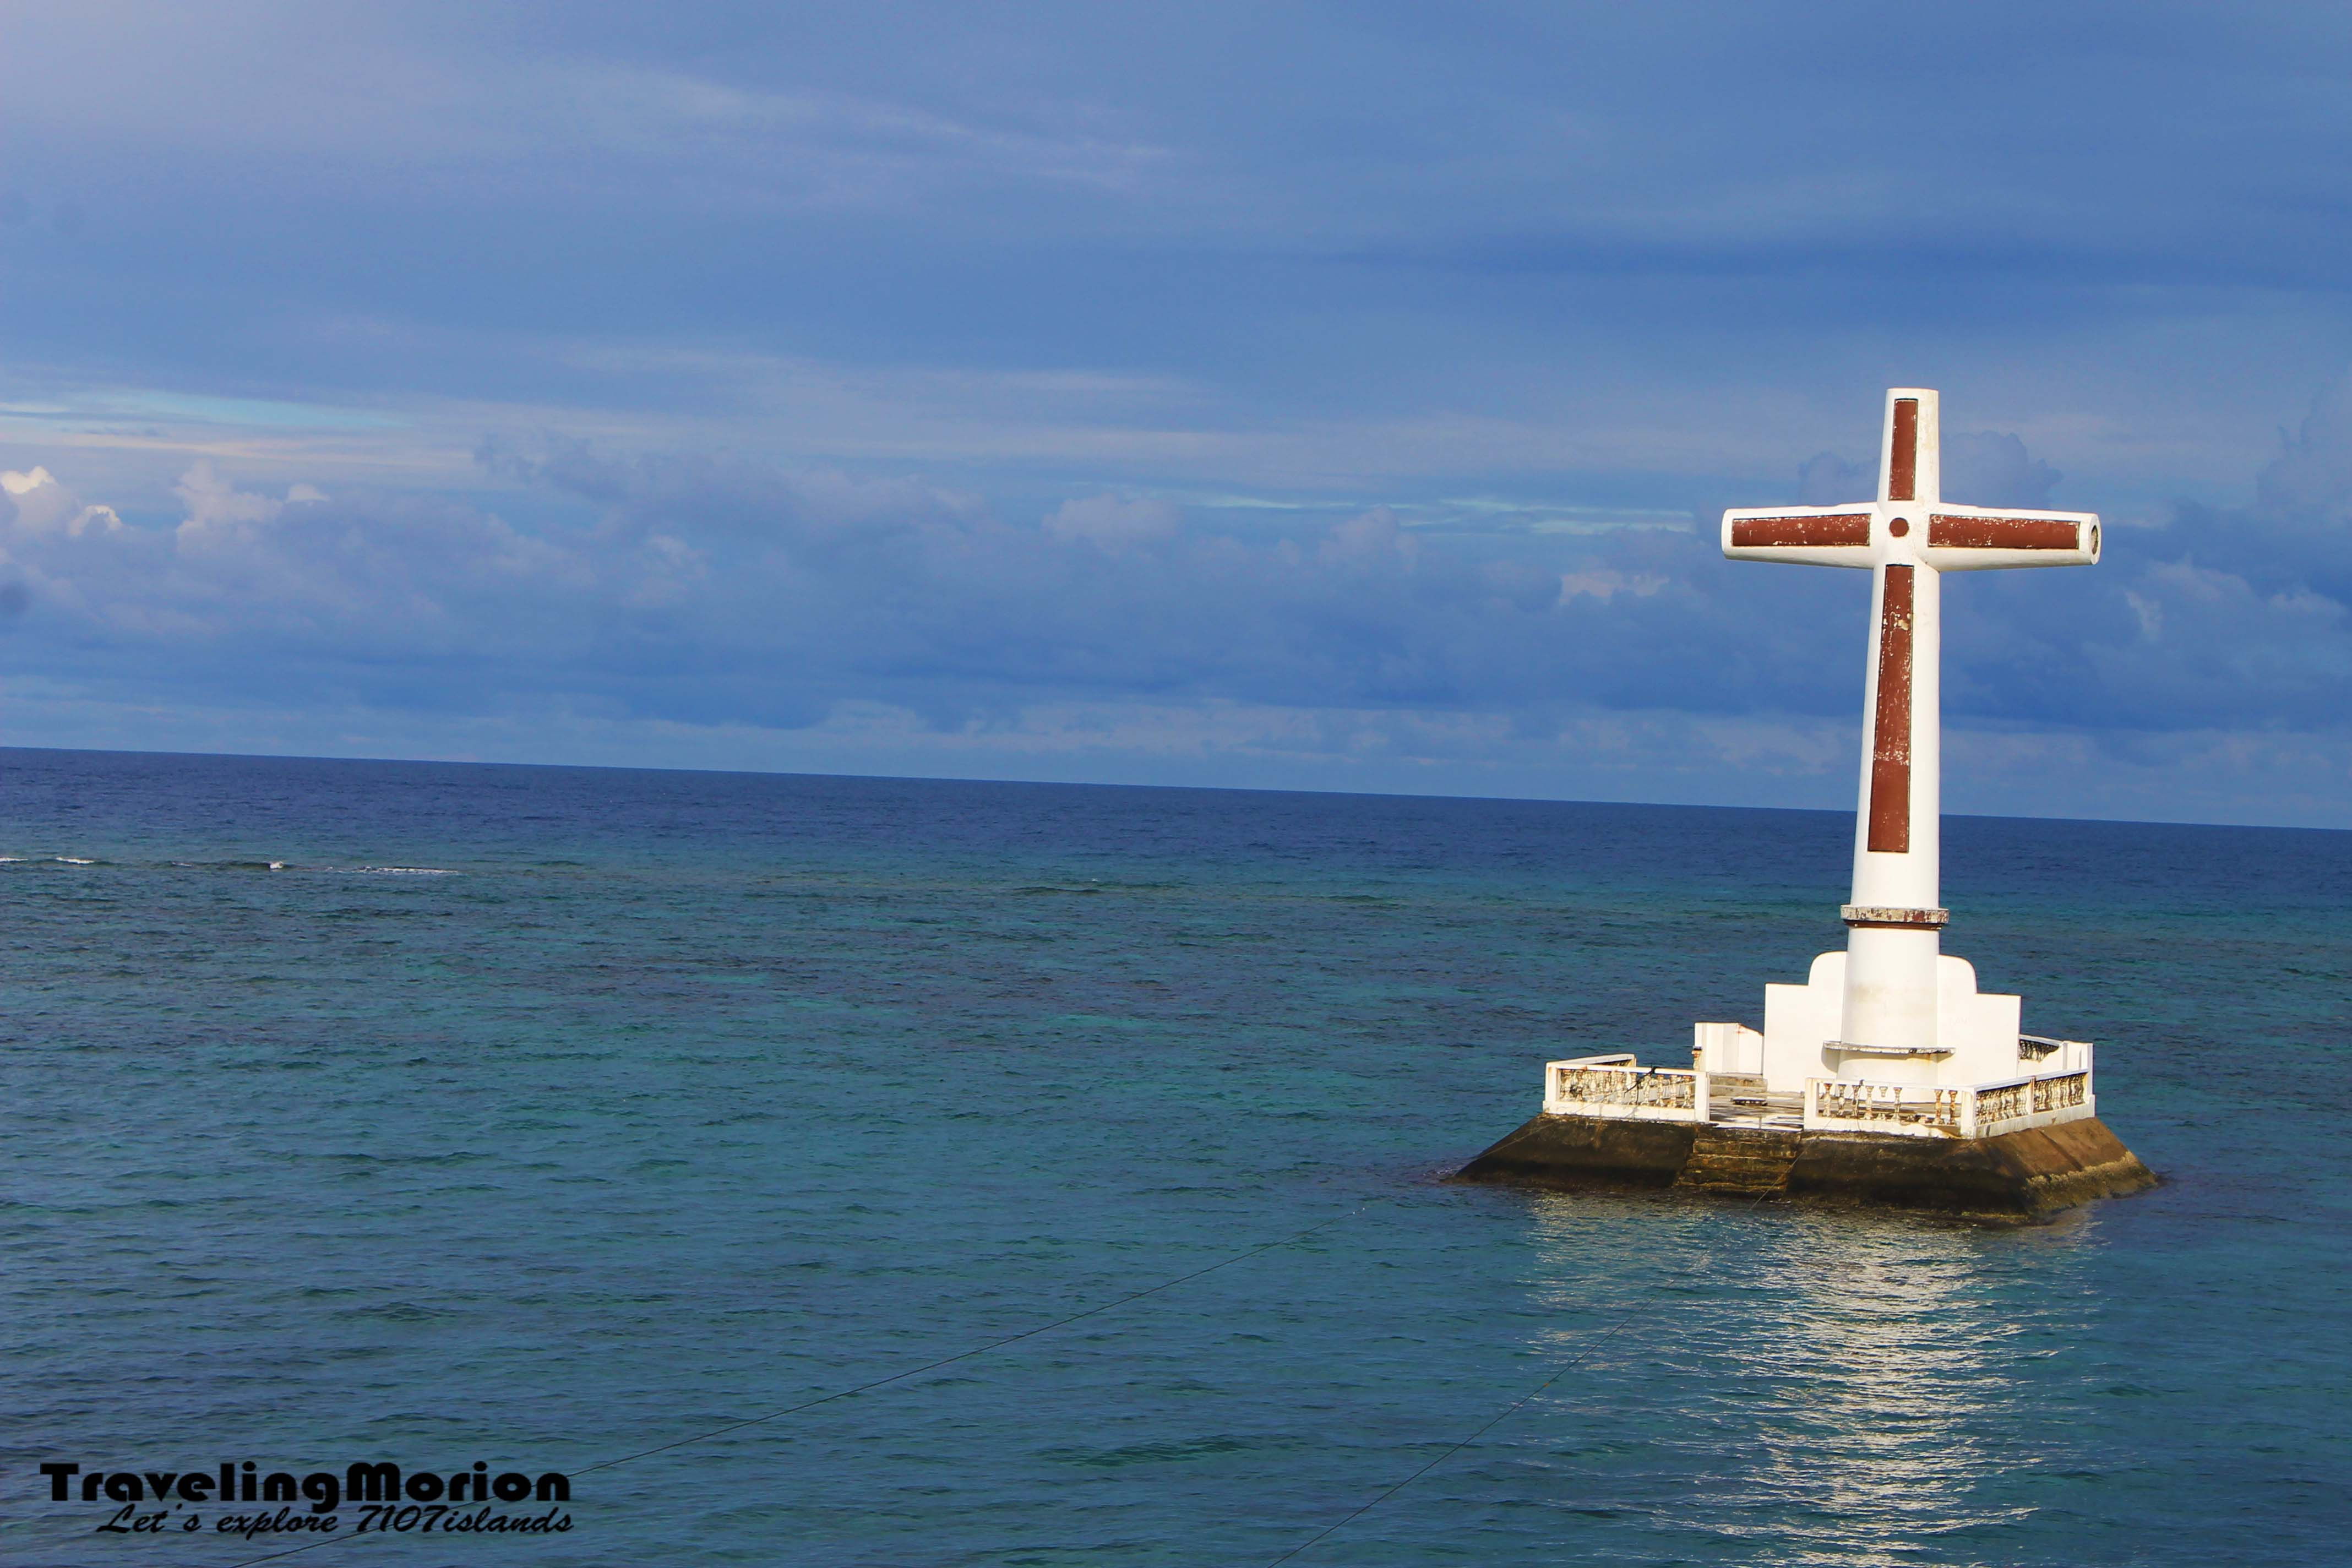 Sunken Cemetery Camiguin, Traveling Morion | Let's explore 7107 Islands: Travel Diaries ...